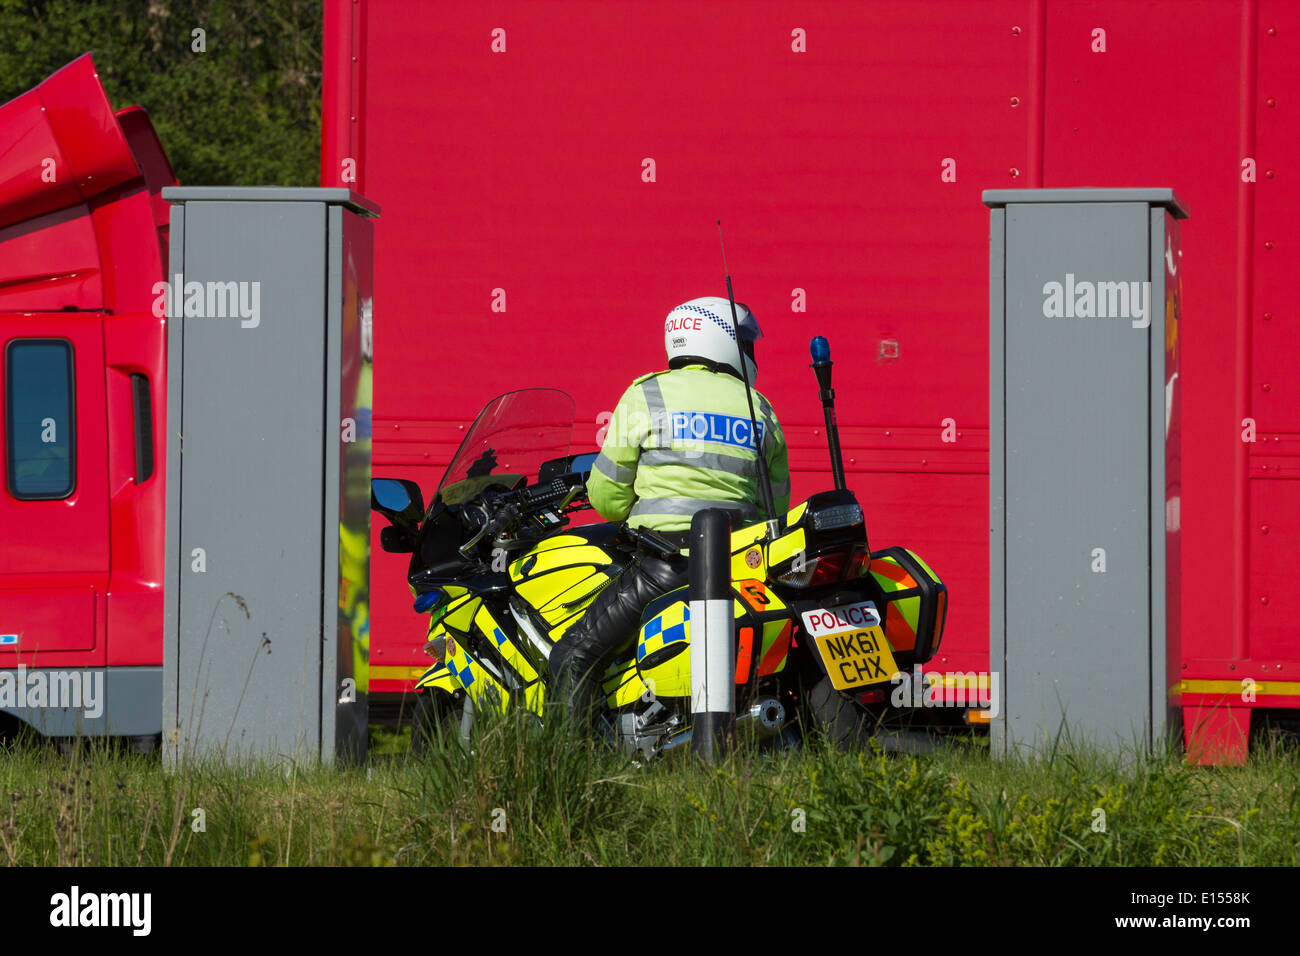 Police motorcycle in layby on Dual Carriageway with Royal Mail truck passing - Stock Image